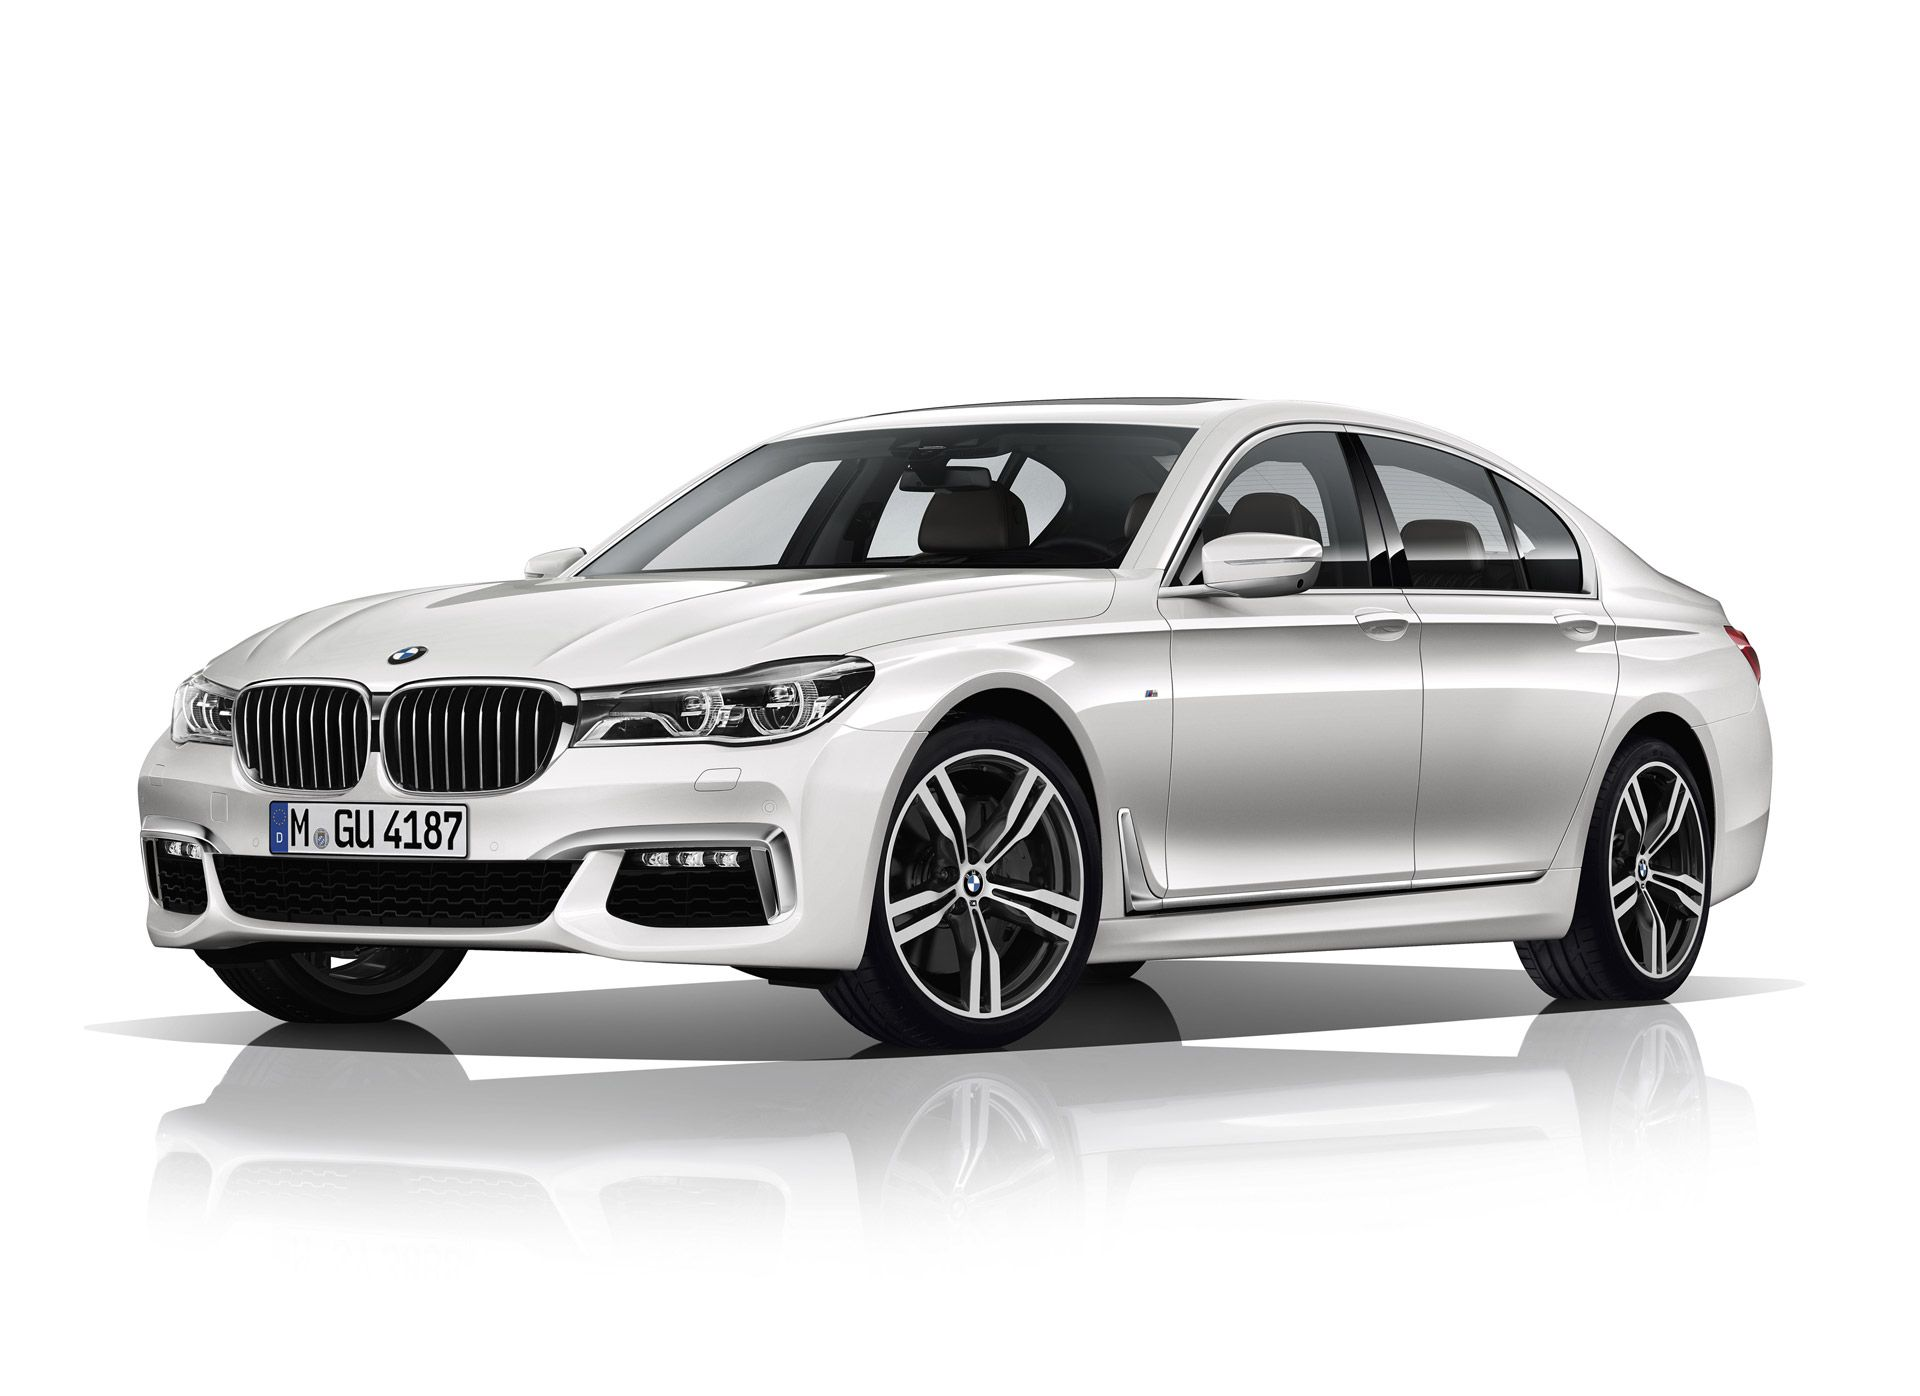 2016 bmw 7 series price and release date http futurecarson